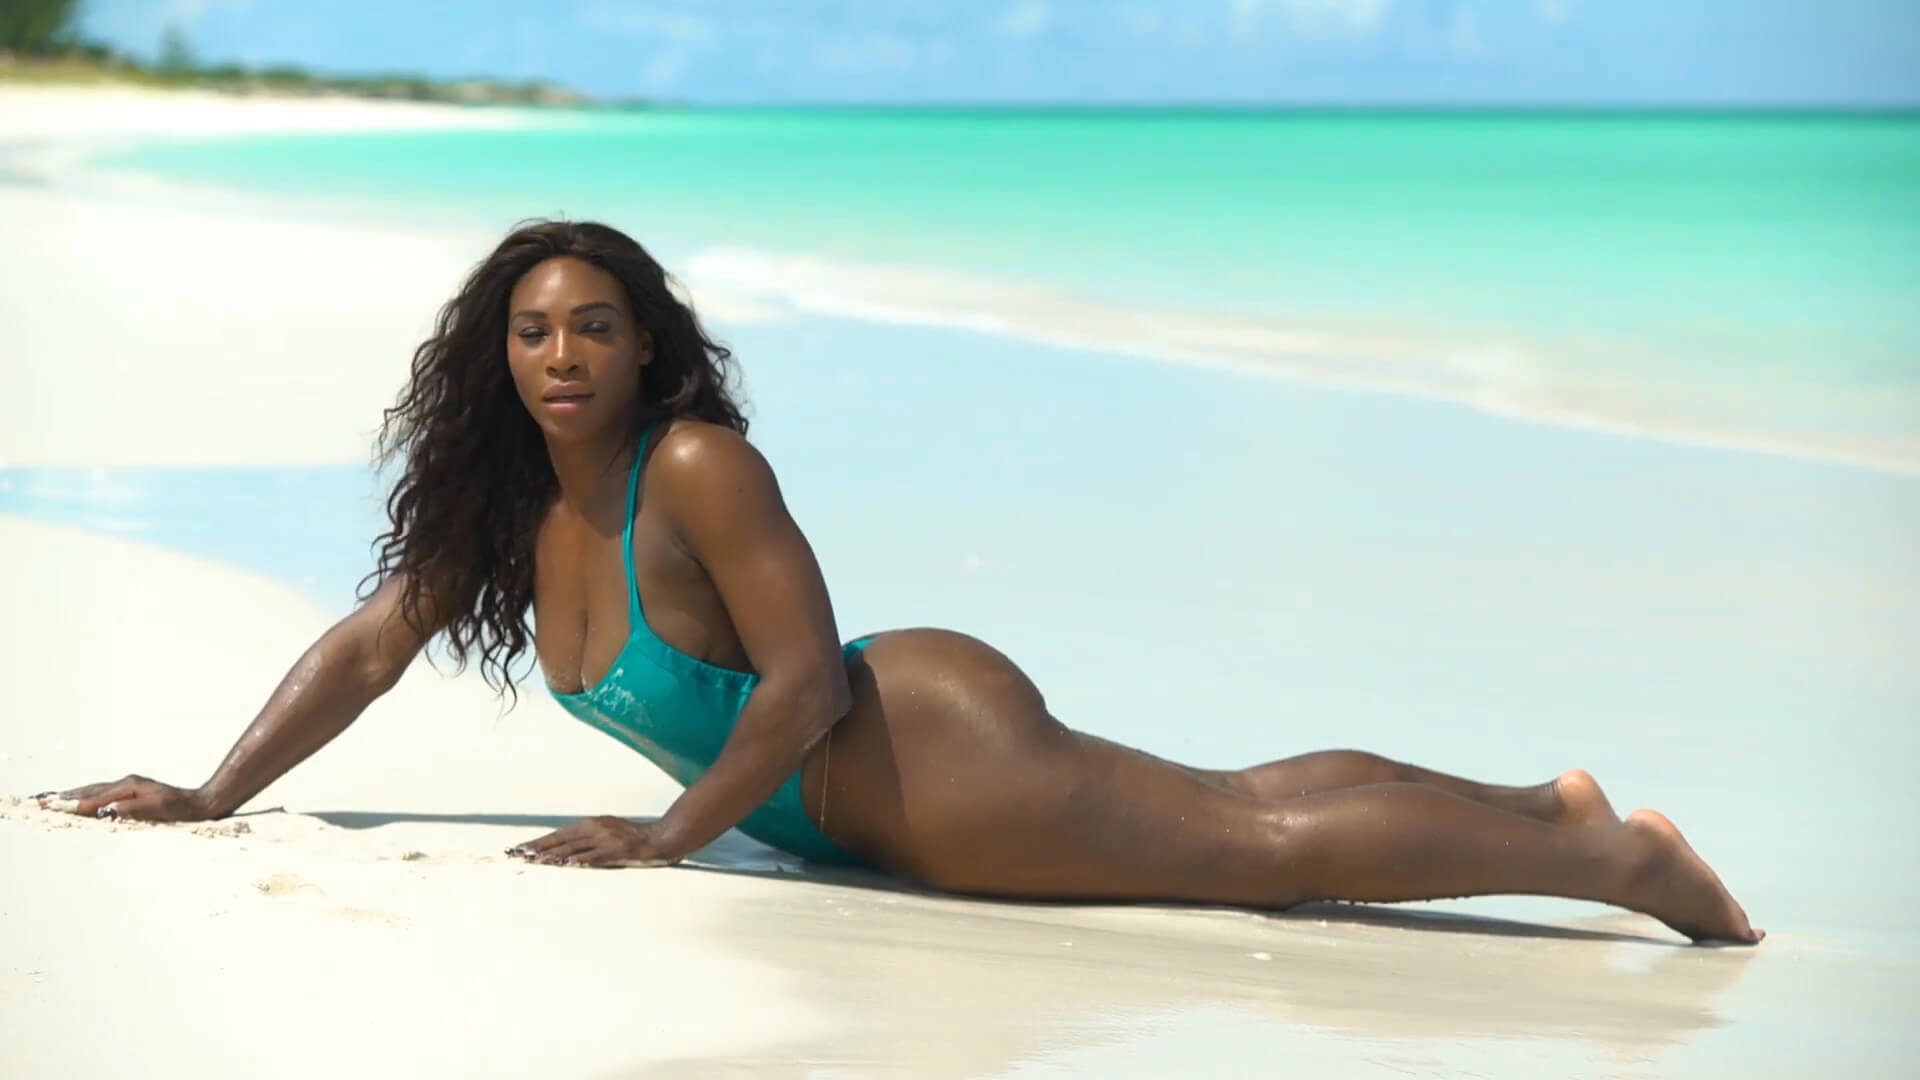 Serena Williams hot pics